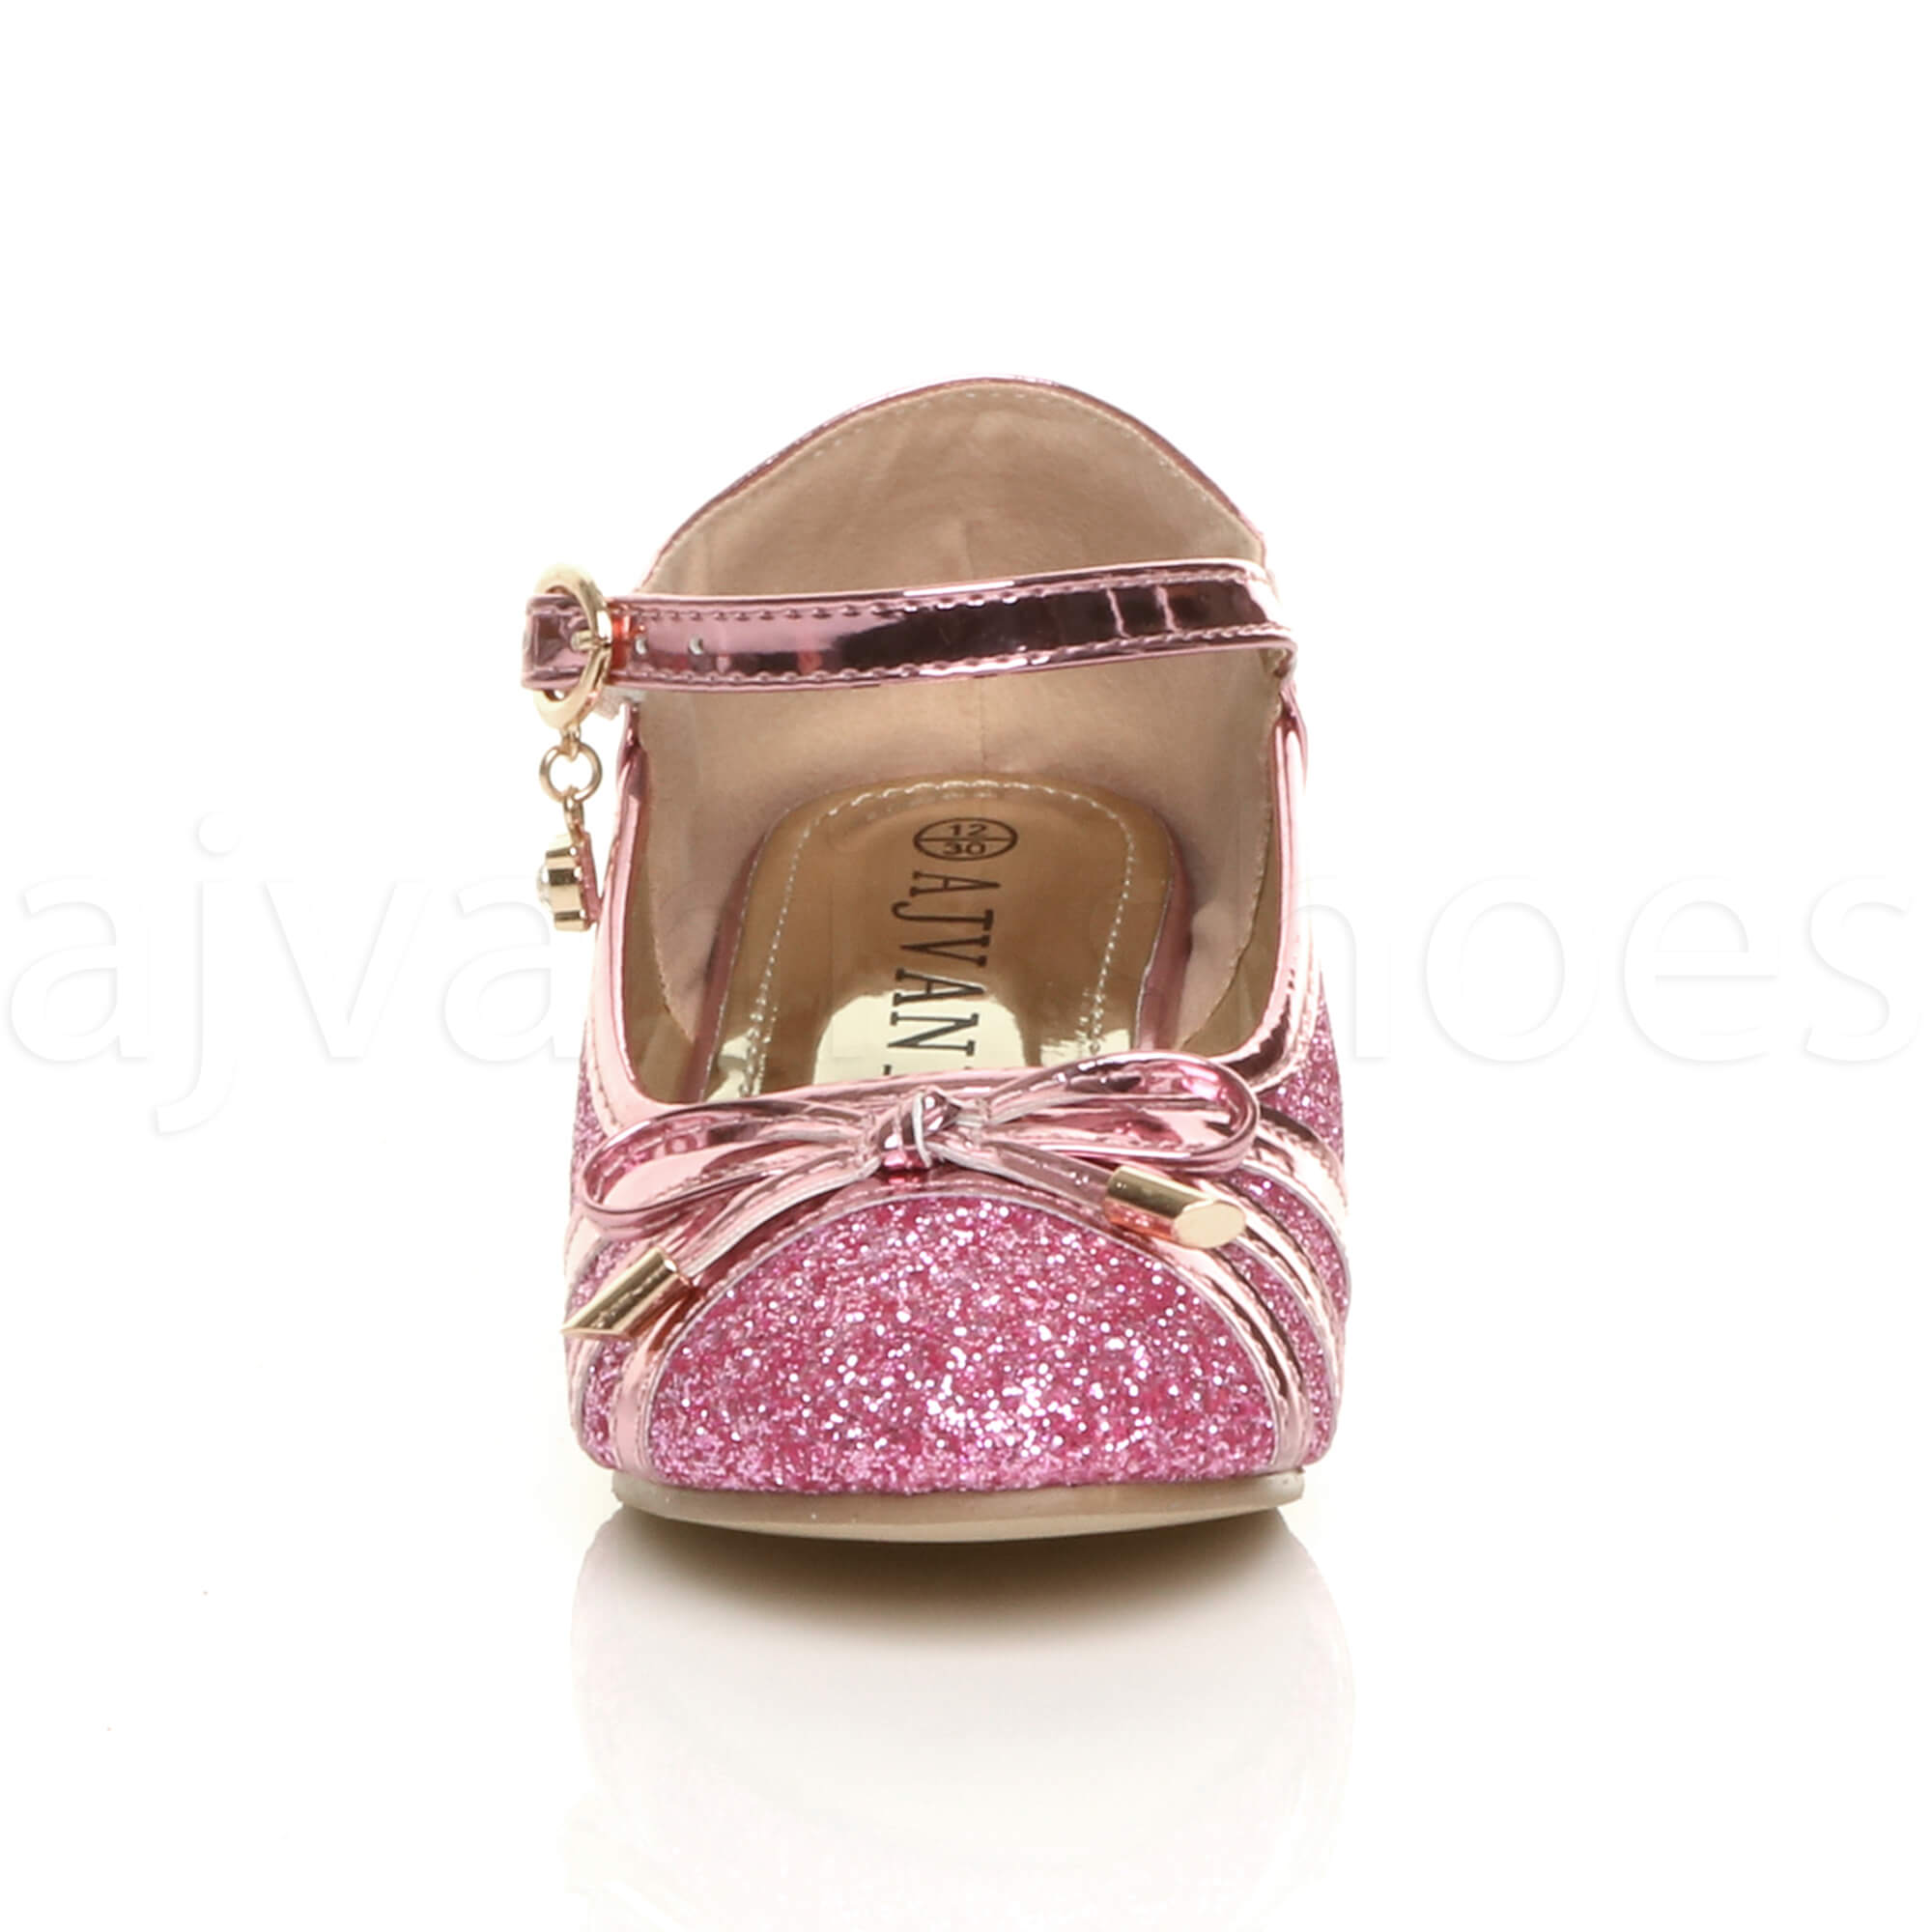 GIRLS-KIDS-CHILDRENS-LOW-HEEL-DIAMANTE-BOW-MARY-JANE-GLITTER-COURT-SHOES-SIZE